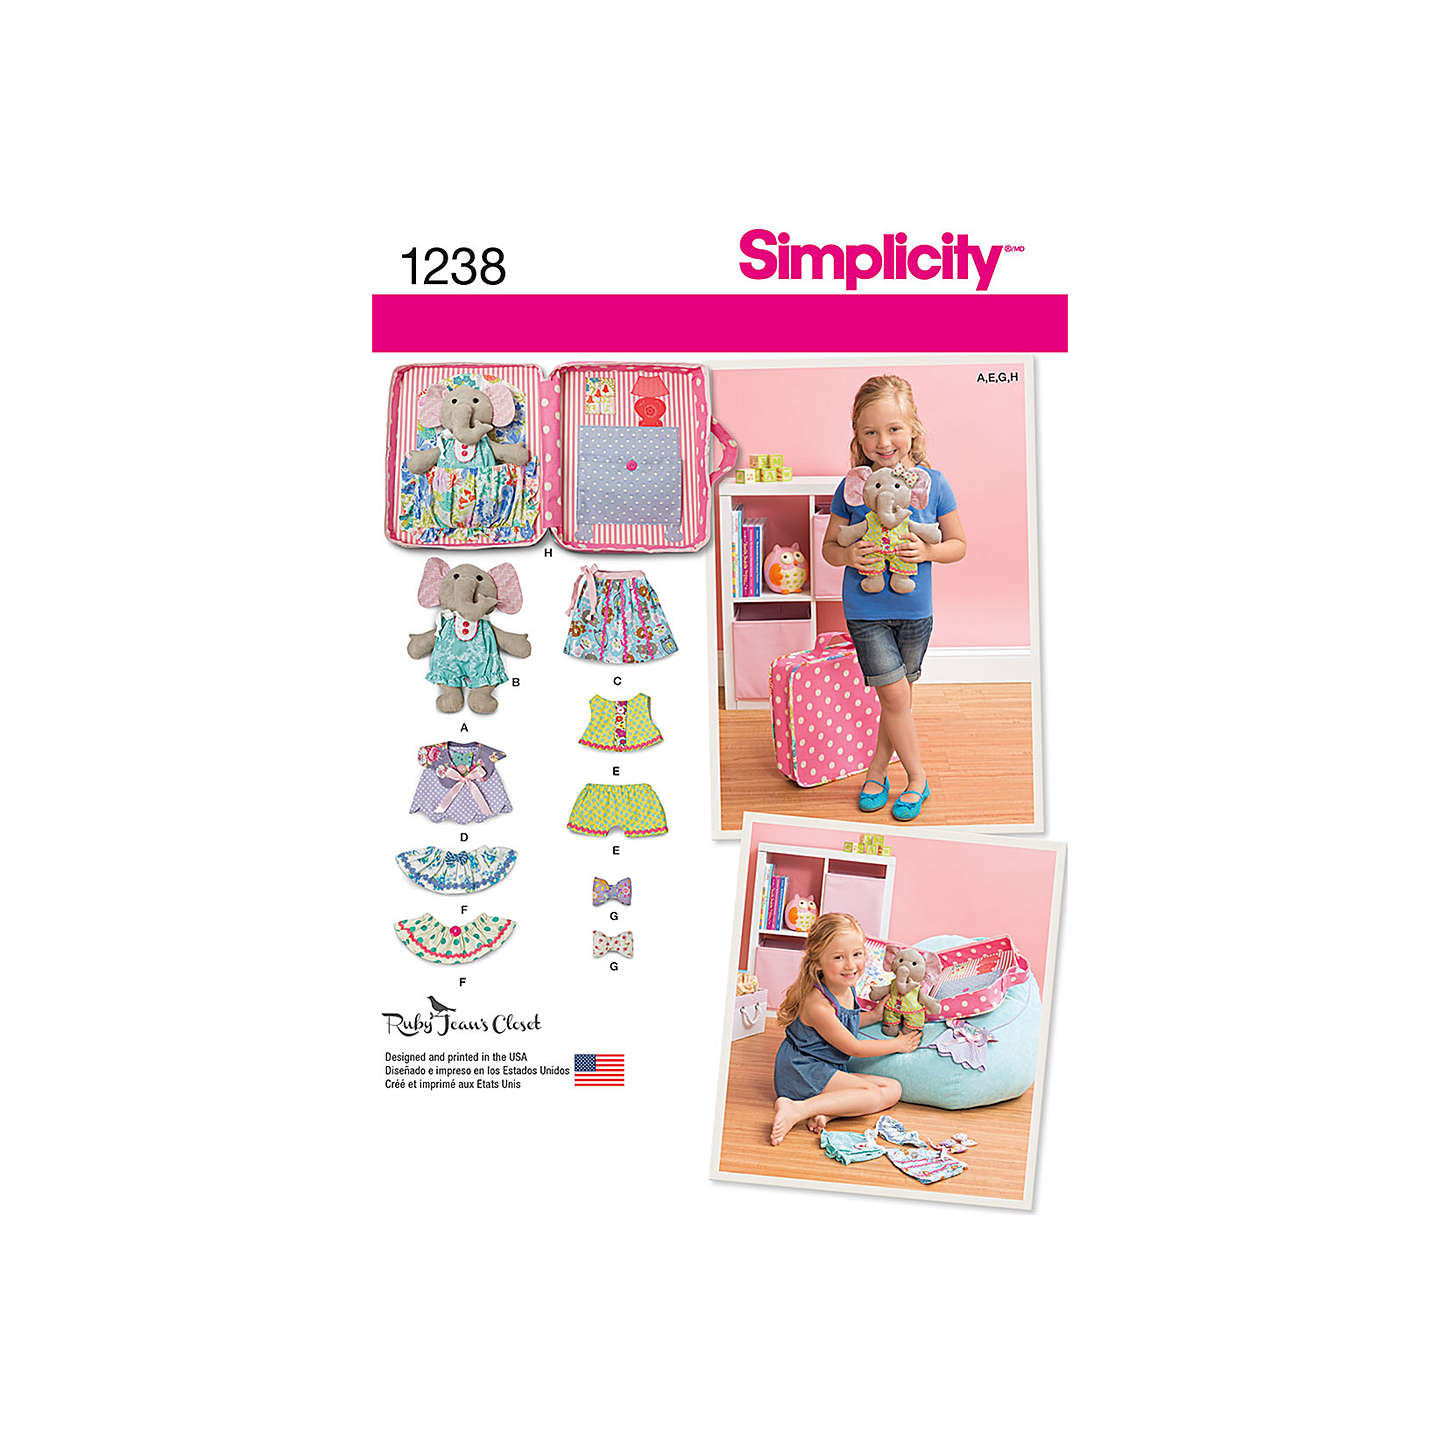 Simplicity ellie the elephant soft toy sewing pattern 1238 at buysimplicity ellie the elephant soft toy sewing pattern 1238 online at johnlewis jeuxipadfo Gallery